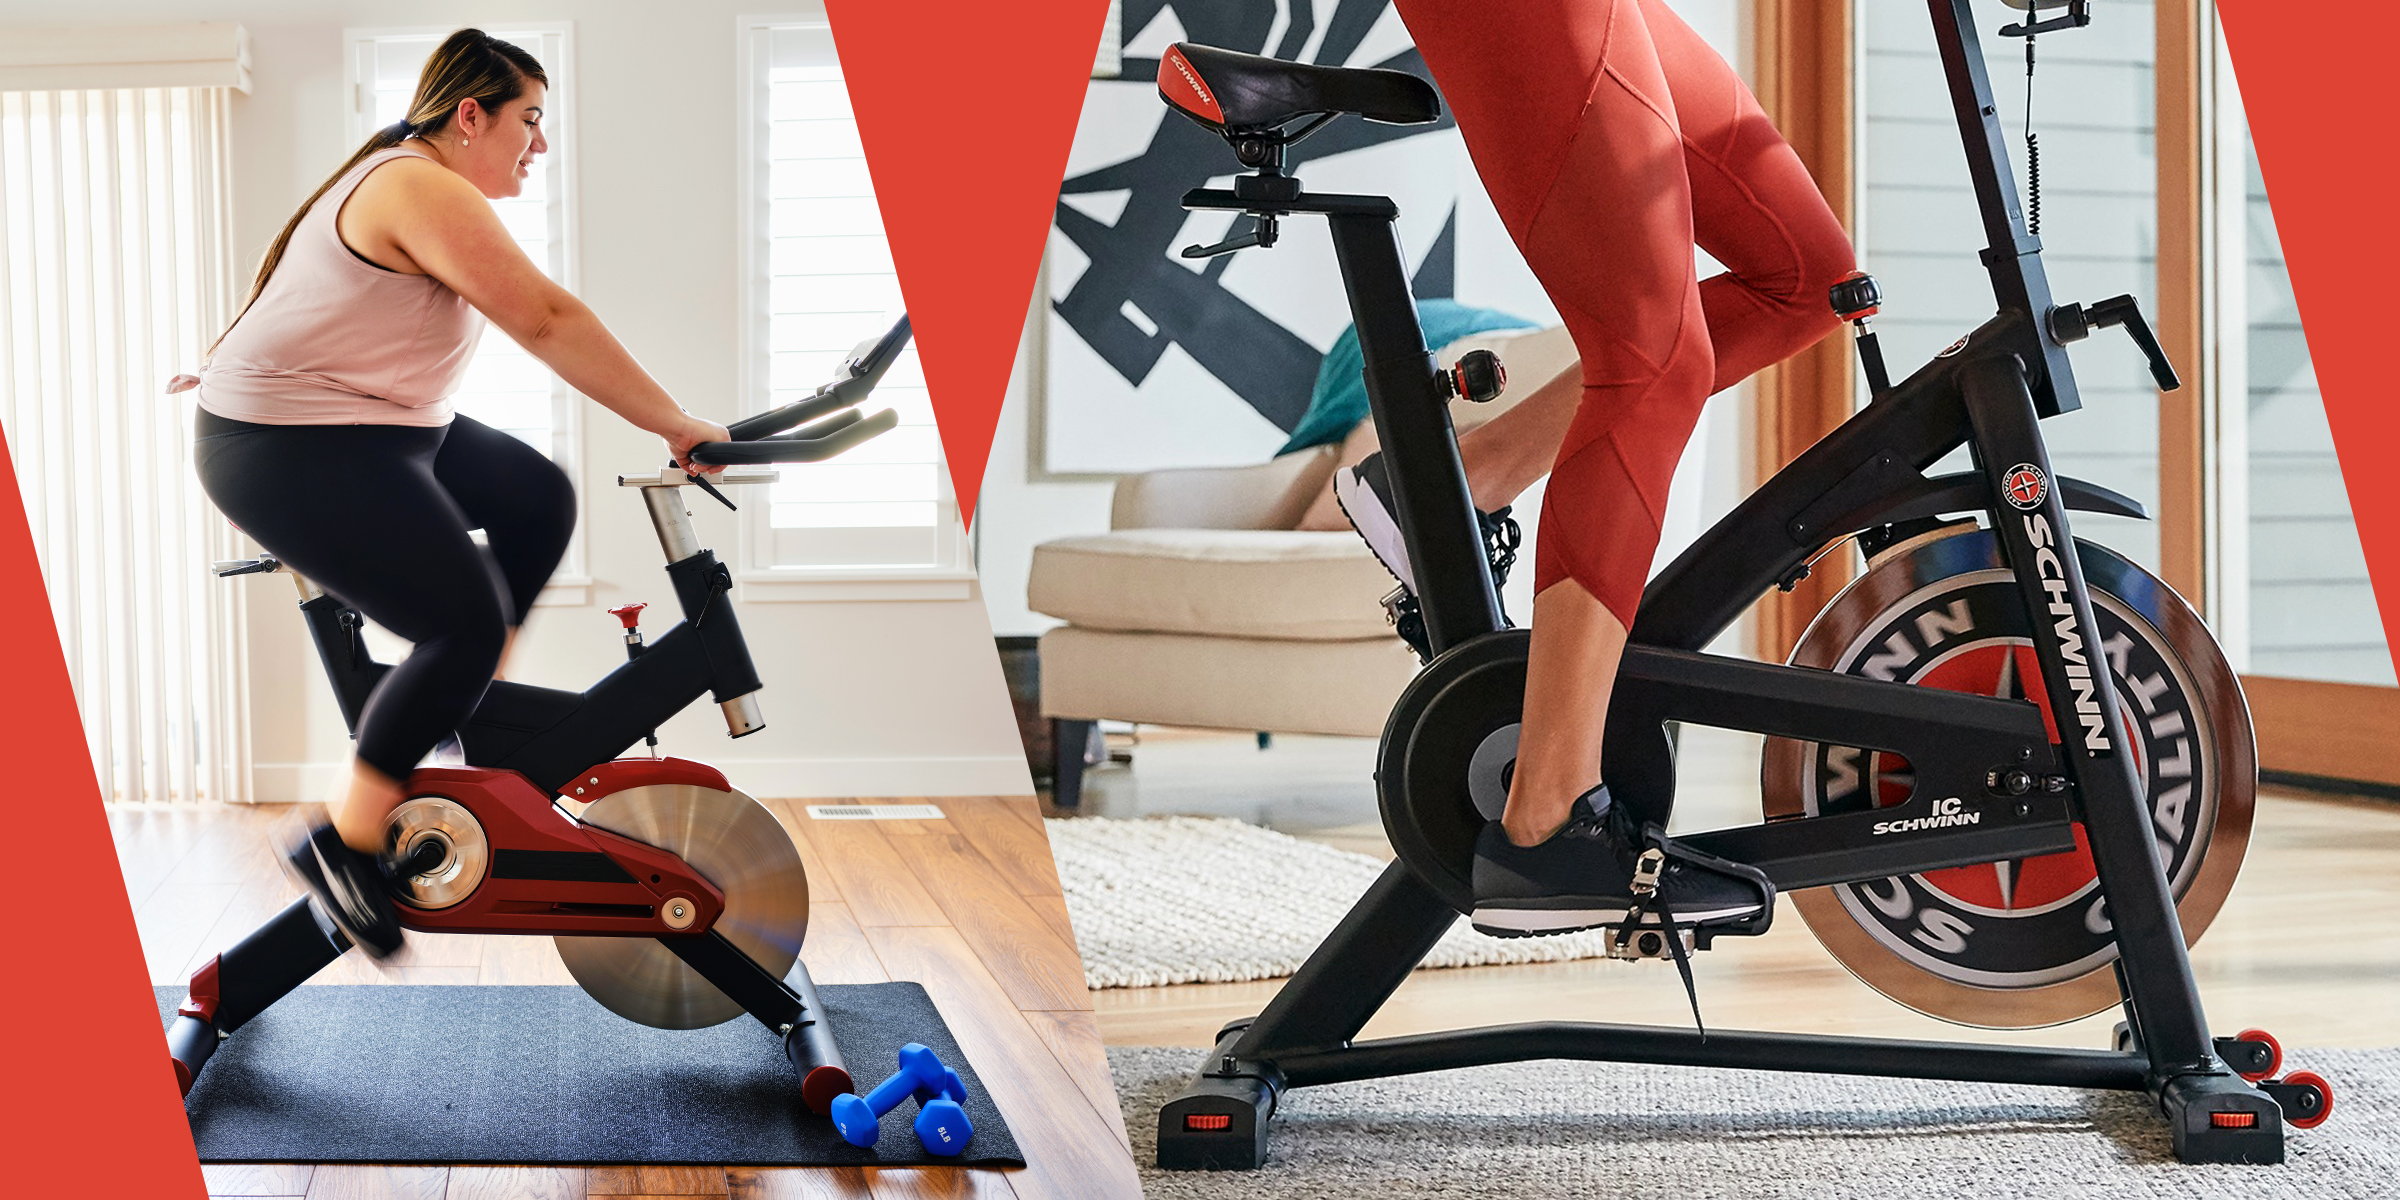 Best Exercise Bikes Of 2021 According To Personal Trainers